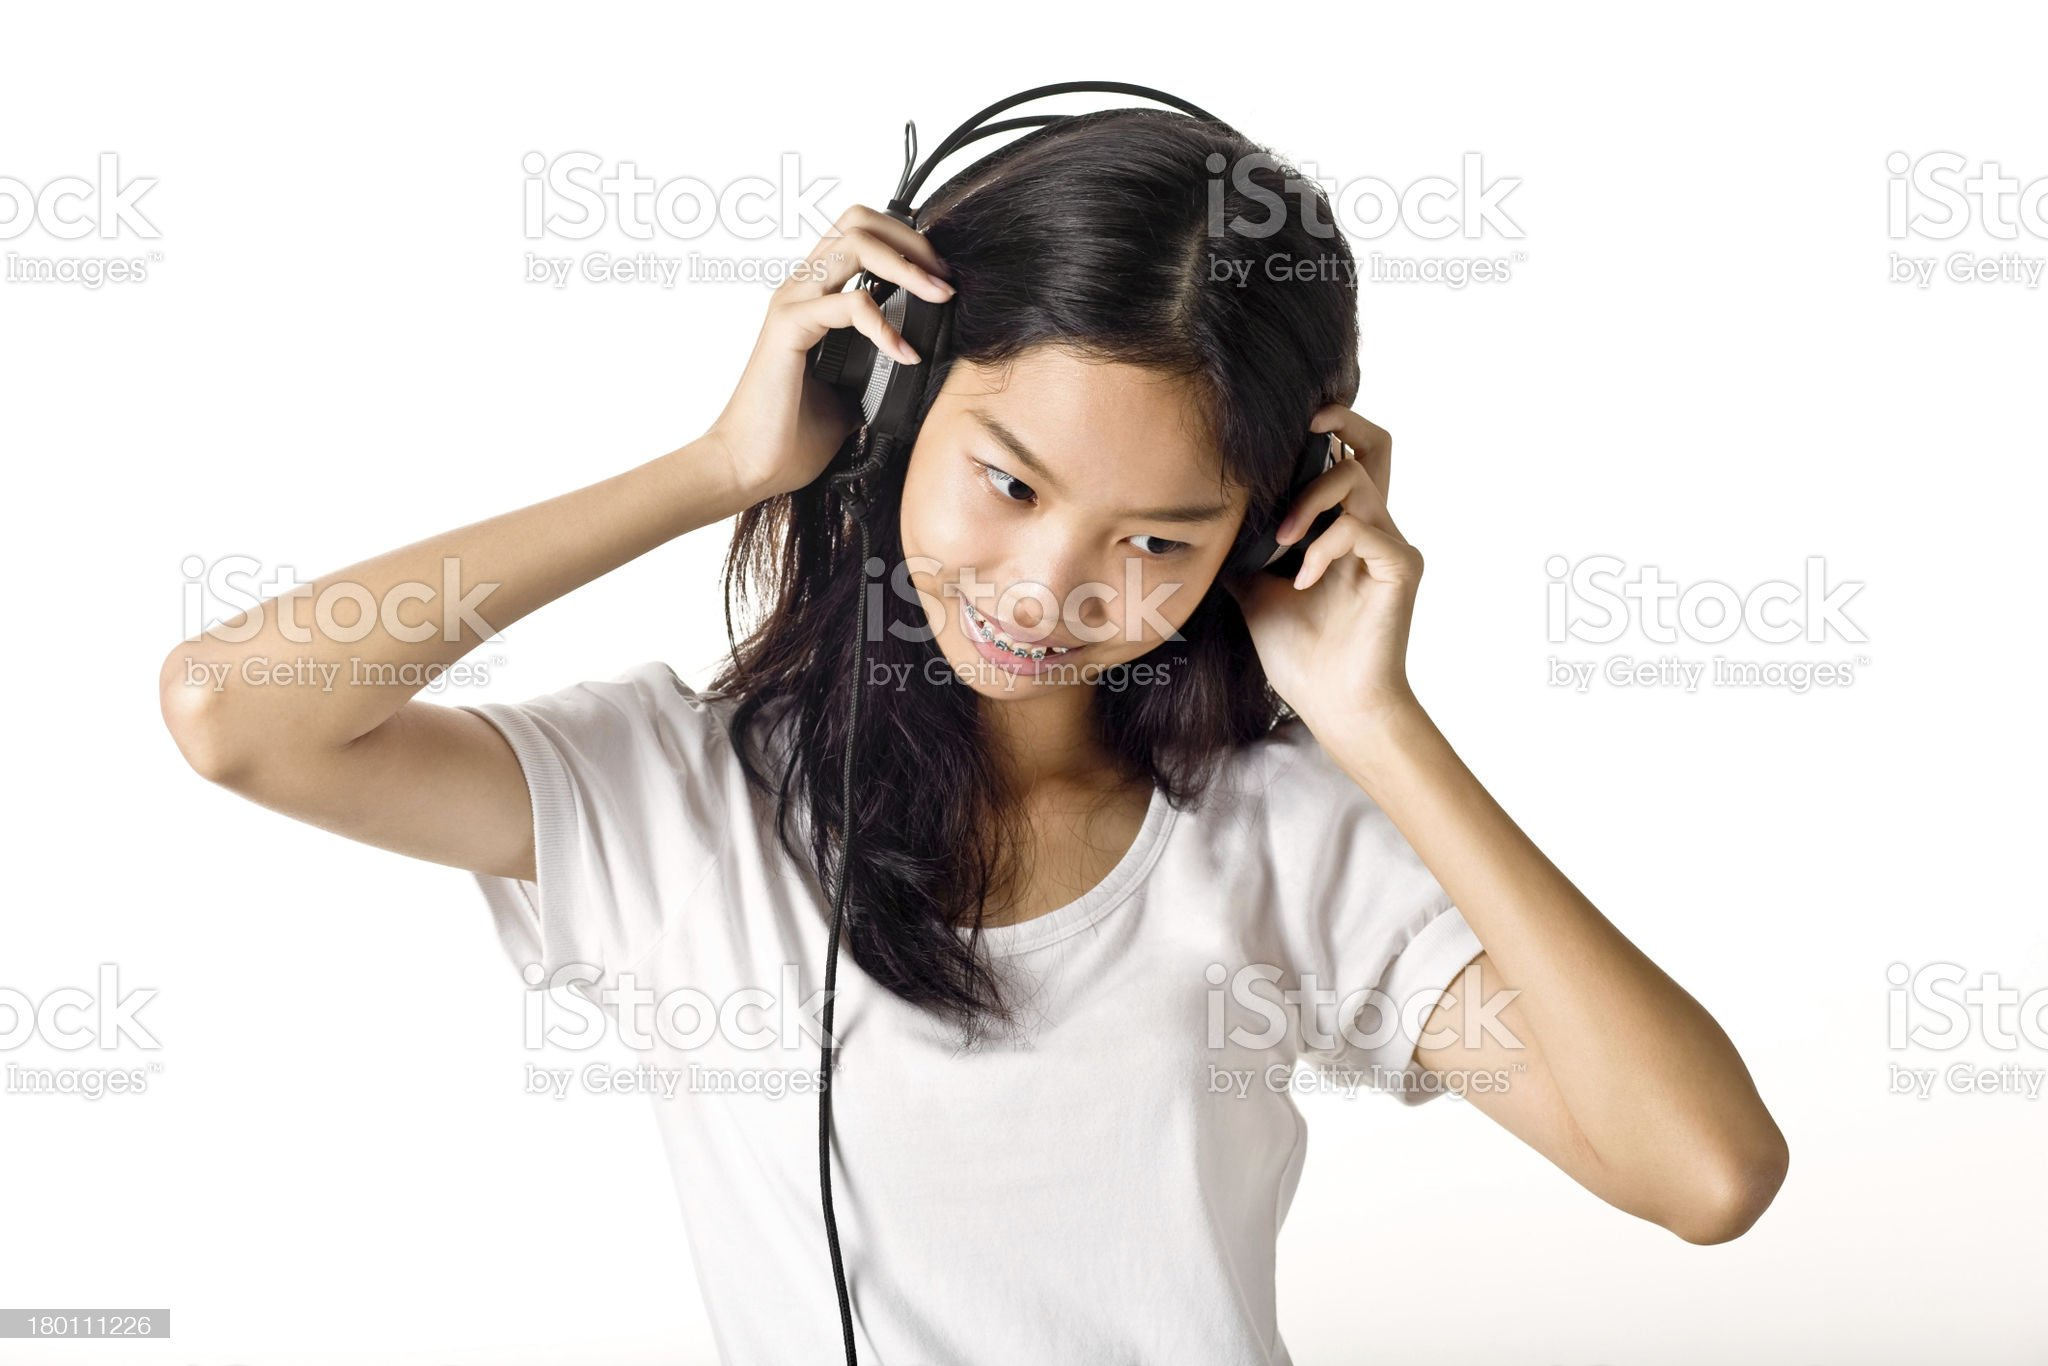 The girl with headphones royalty-free stock photo